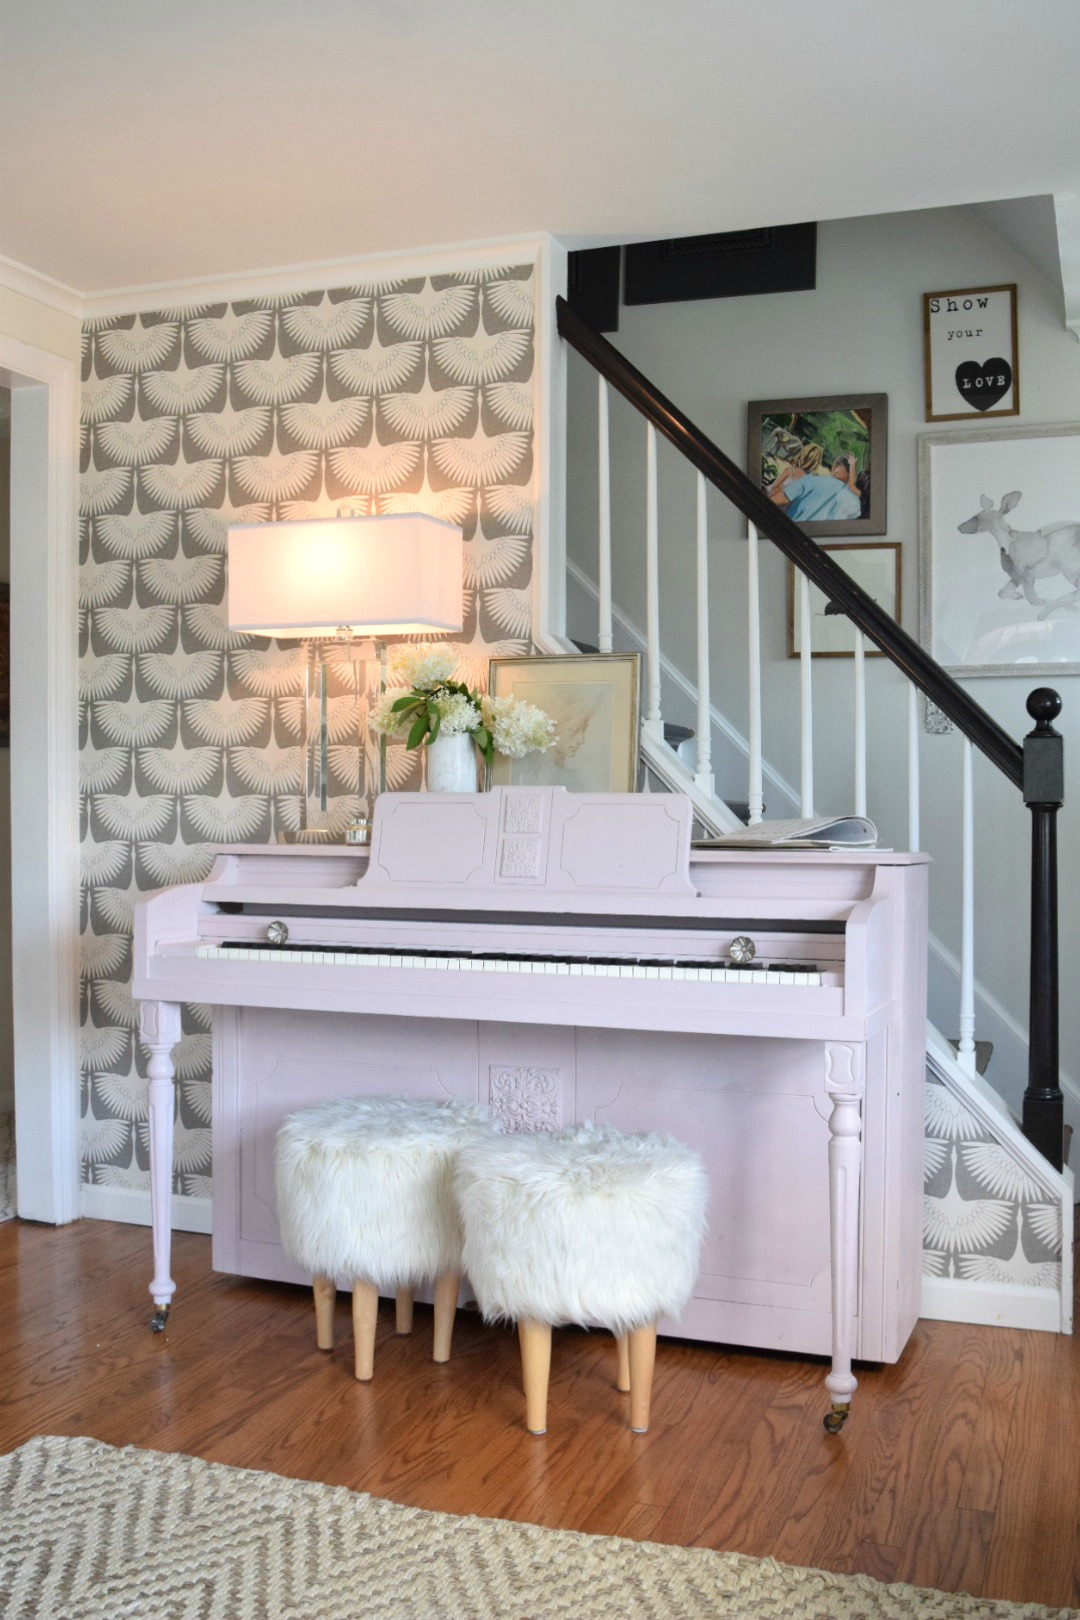 Figuring out your home decor style